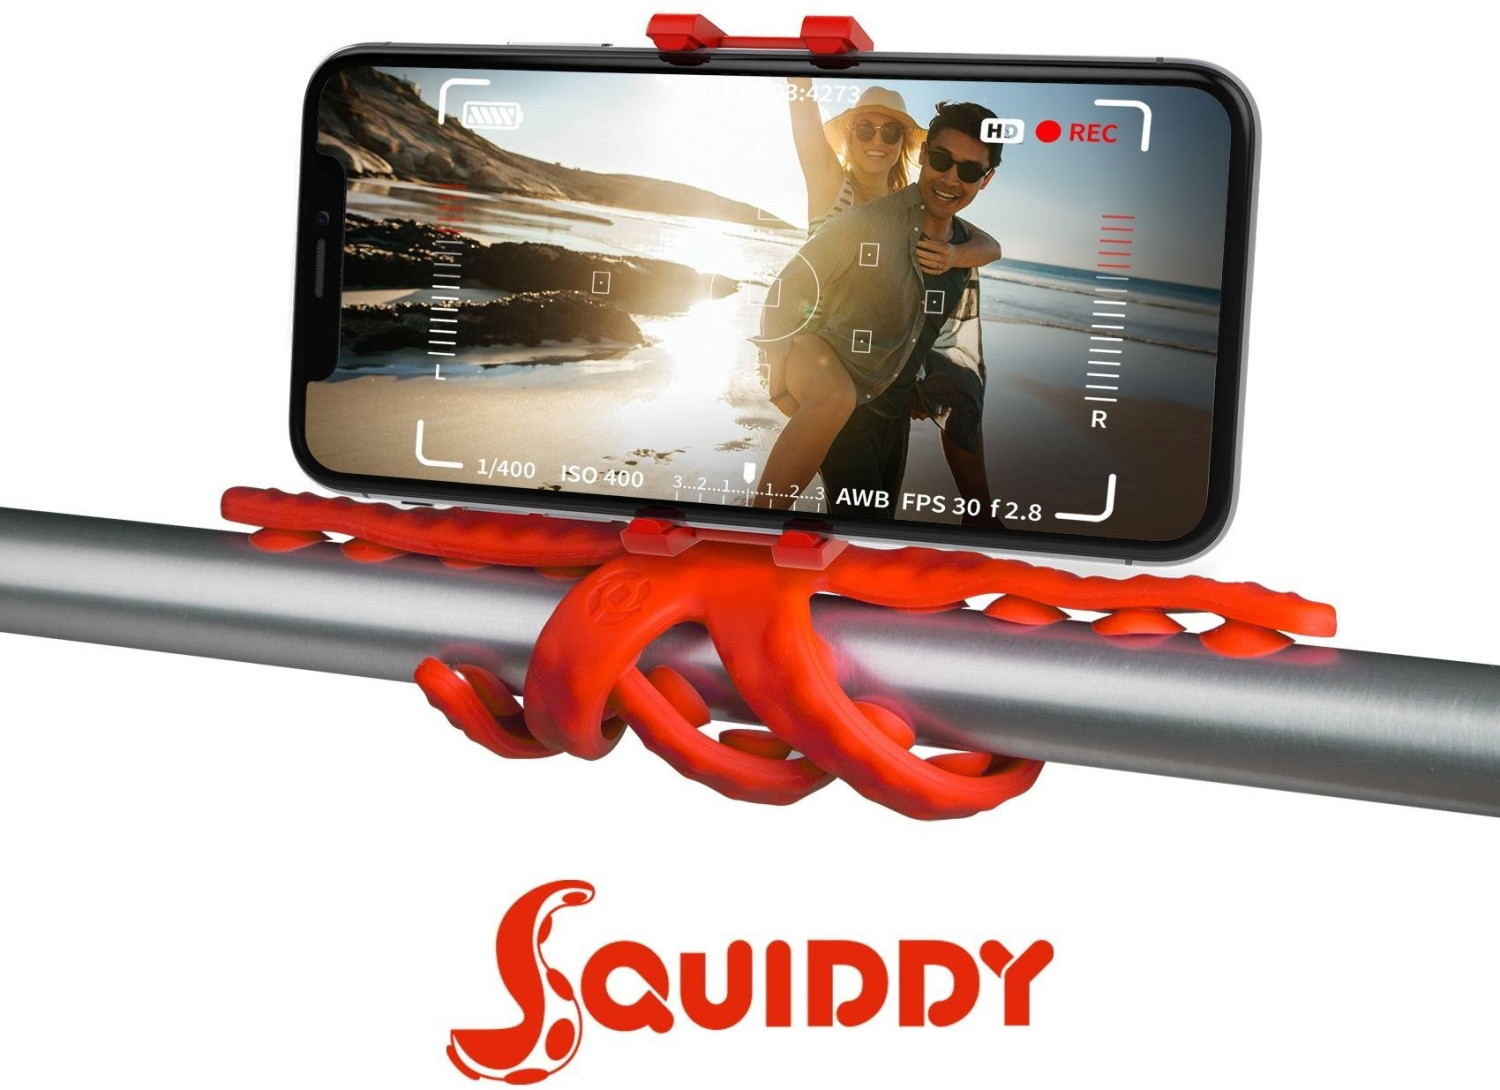 Image of Celly Squiddy red